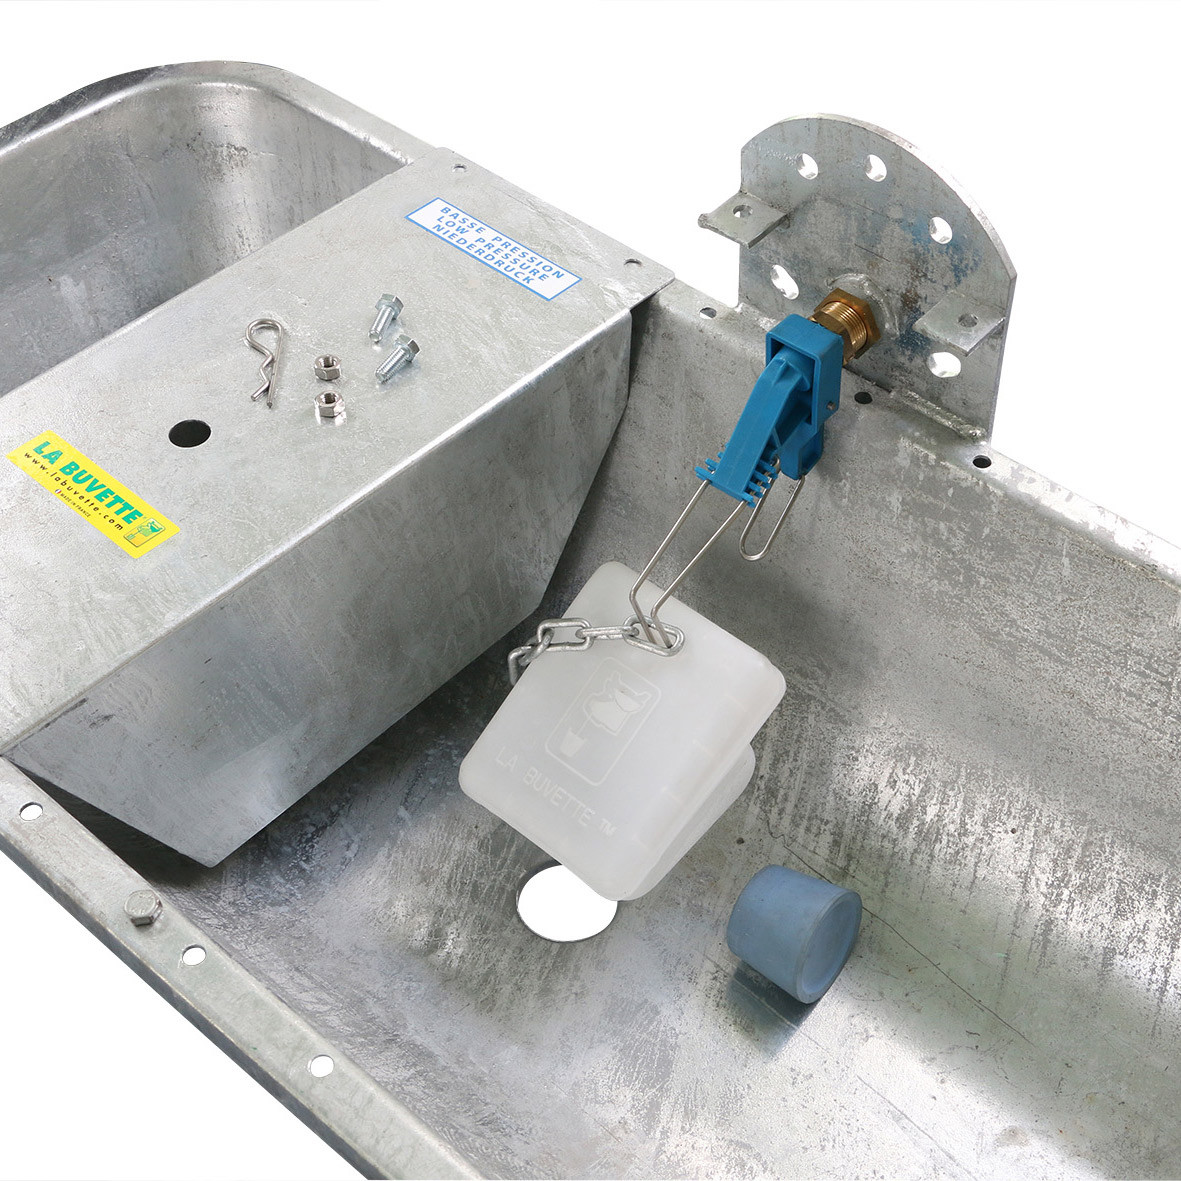 GALVALAC 65T float valve and draining